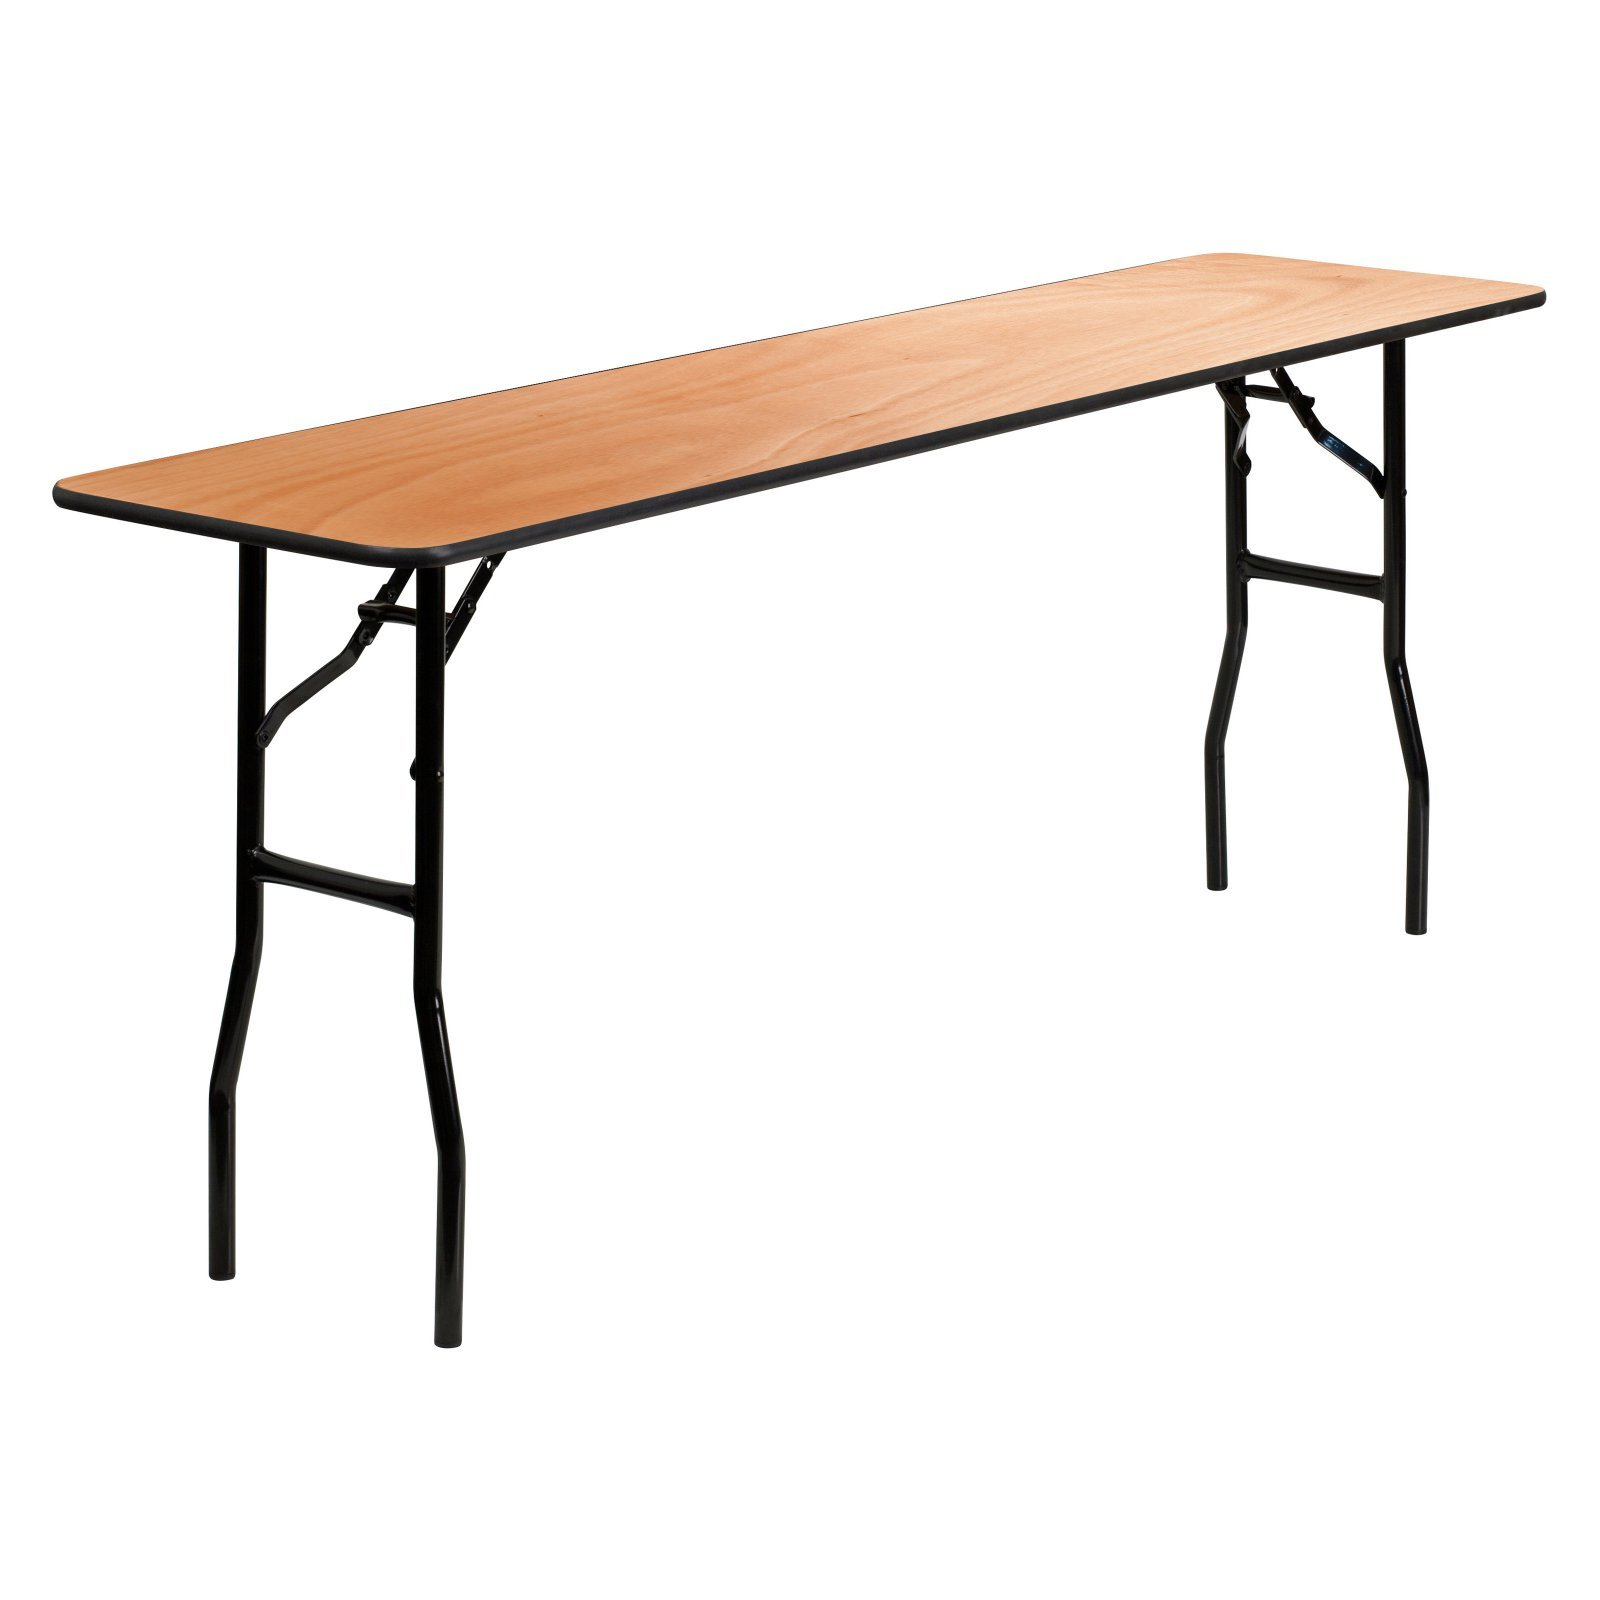 18'' x 72'' Rectangular Wood Folding Training / Seminar Table with Smooth Clear Coated Finished Top Built for Constant Use